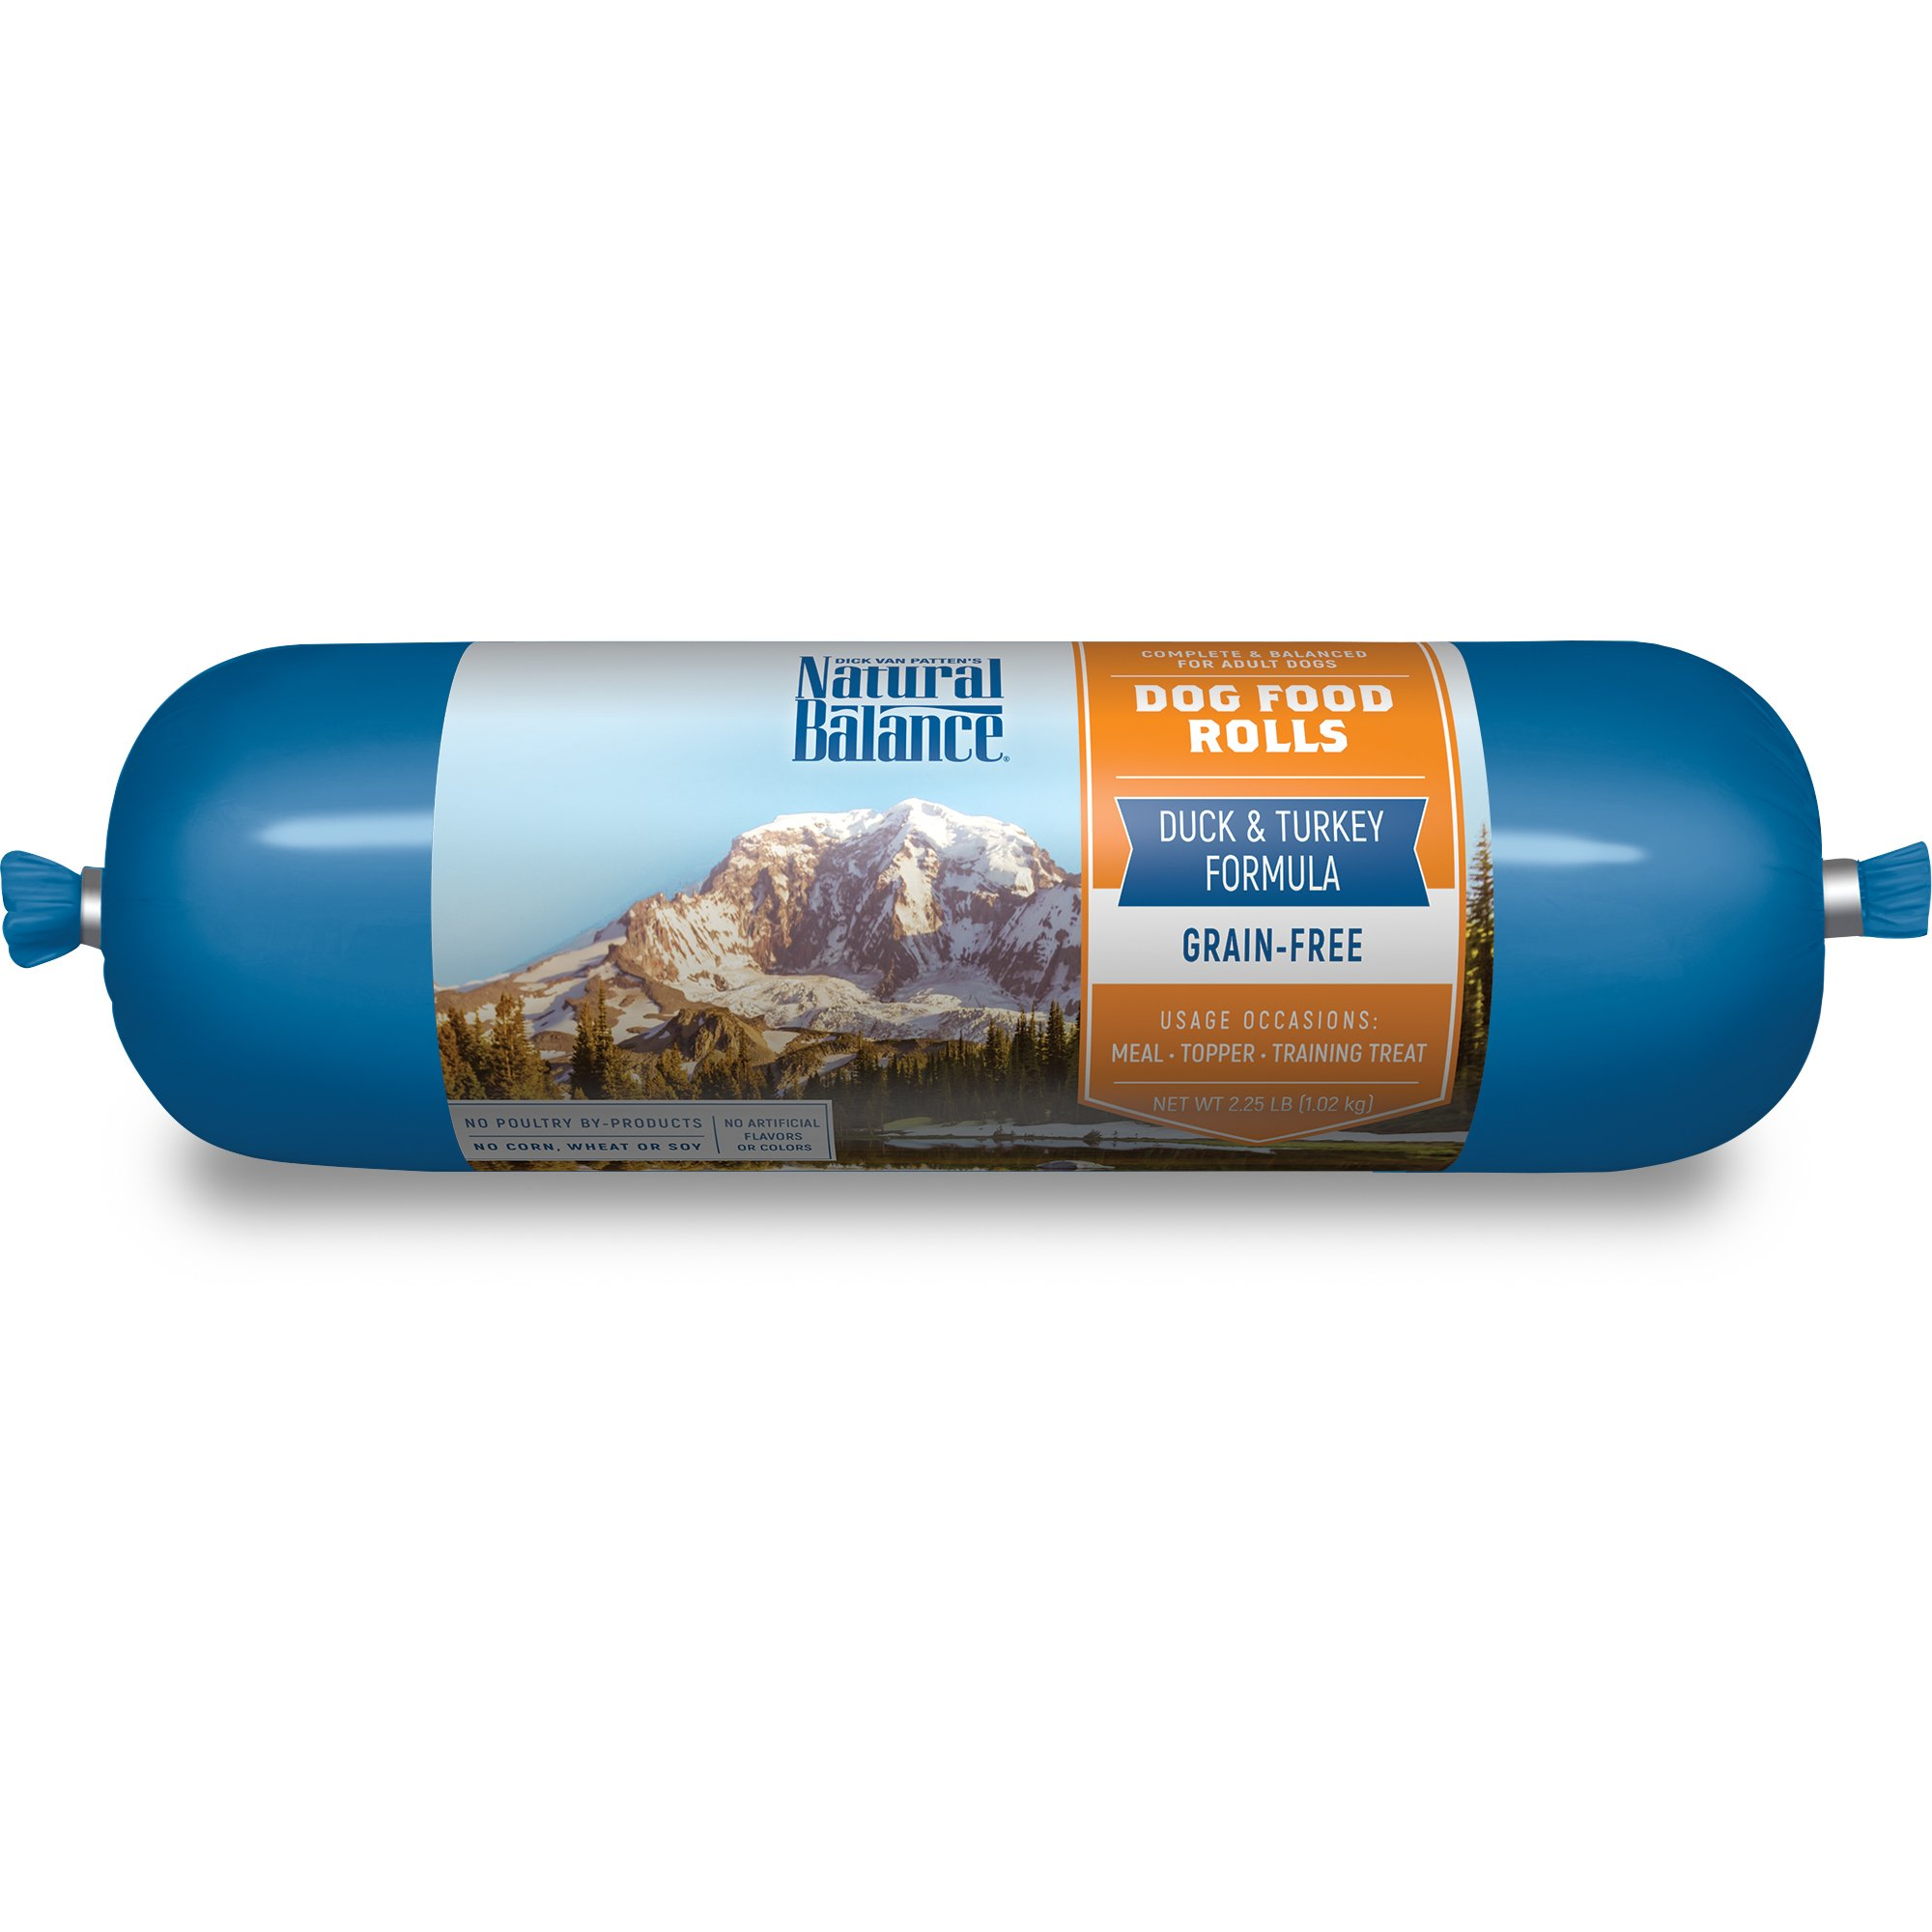 Natural Balance Duck & Turkey Formula Dog Food Rolls